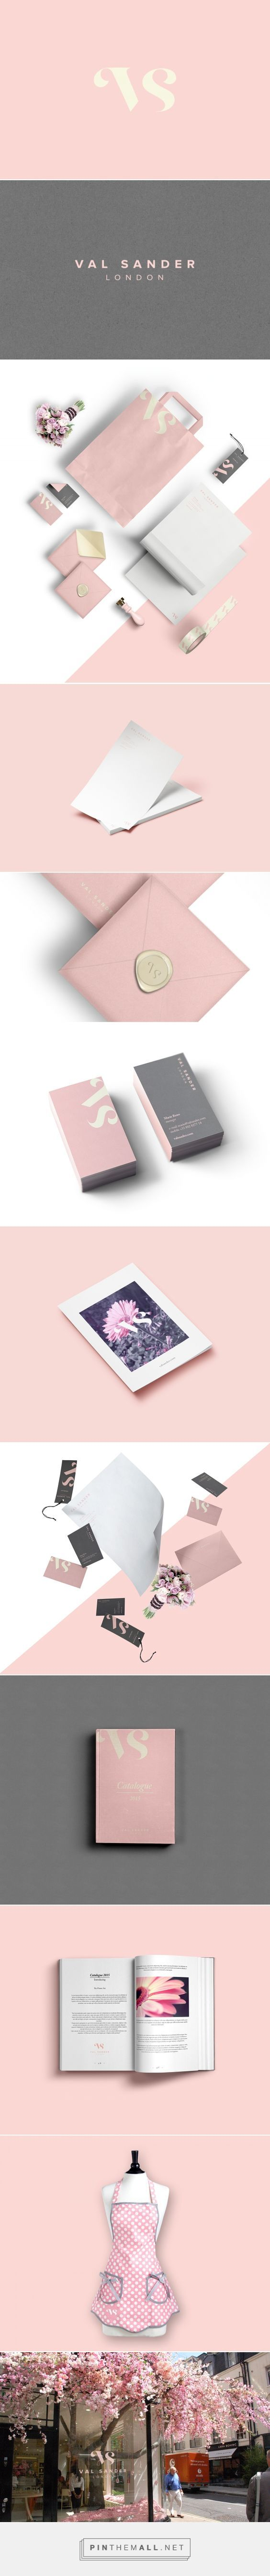 Val Sanders Flower Shop Branding (Unknown Designer) | Fivestar Branding Agency – Design and Branding Agency & Curated Inspiration Gallery